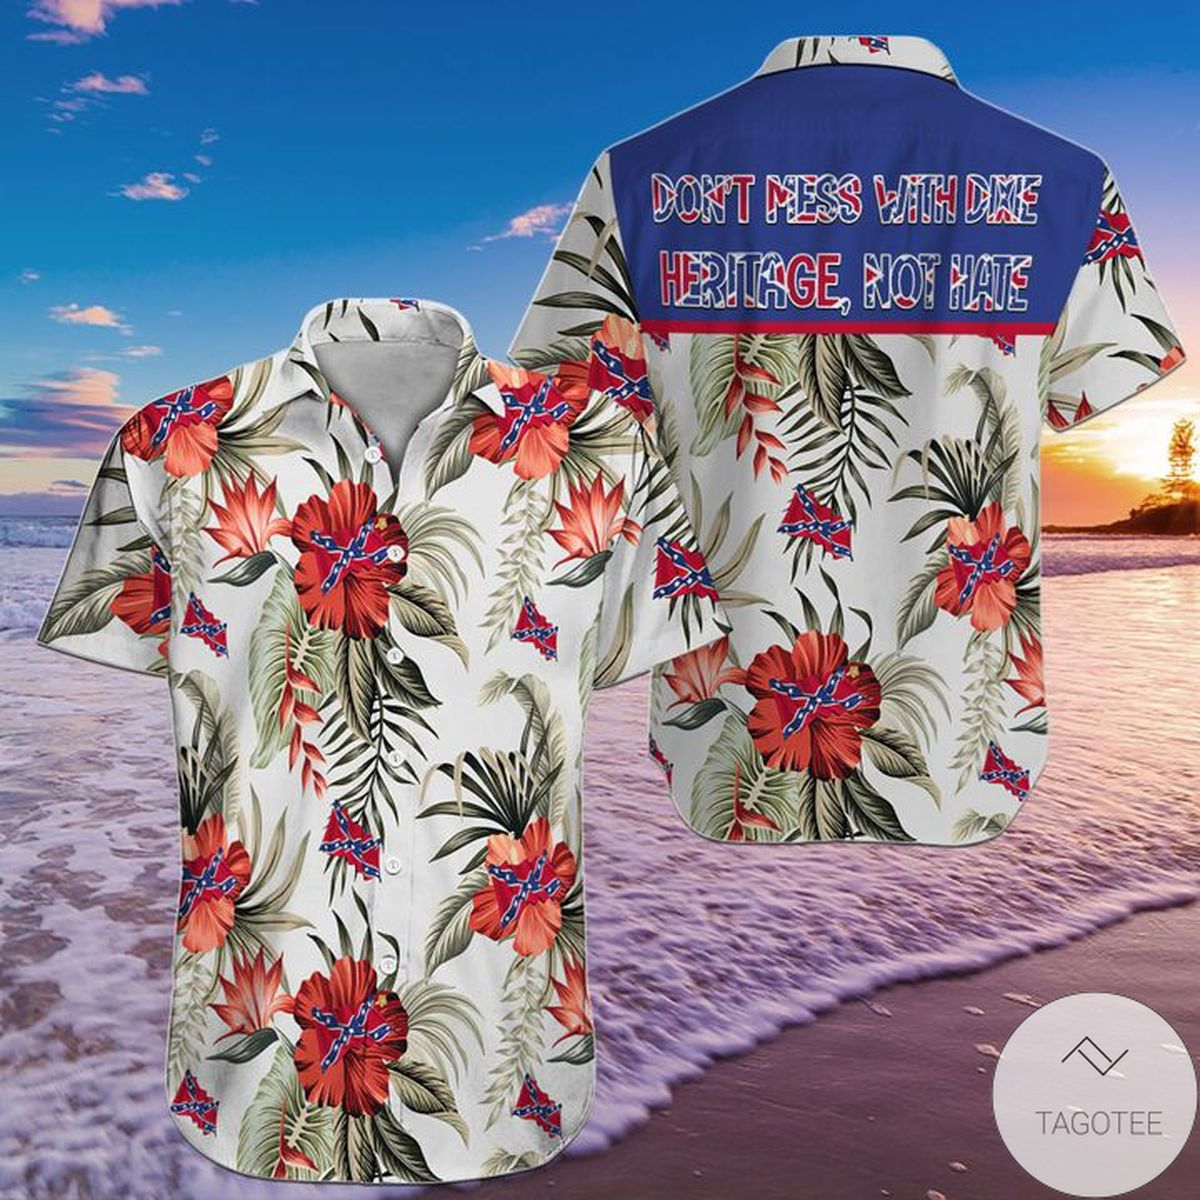 Don't Mess With Dixie Heritage Not Hate Hawaiian Shirt